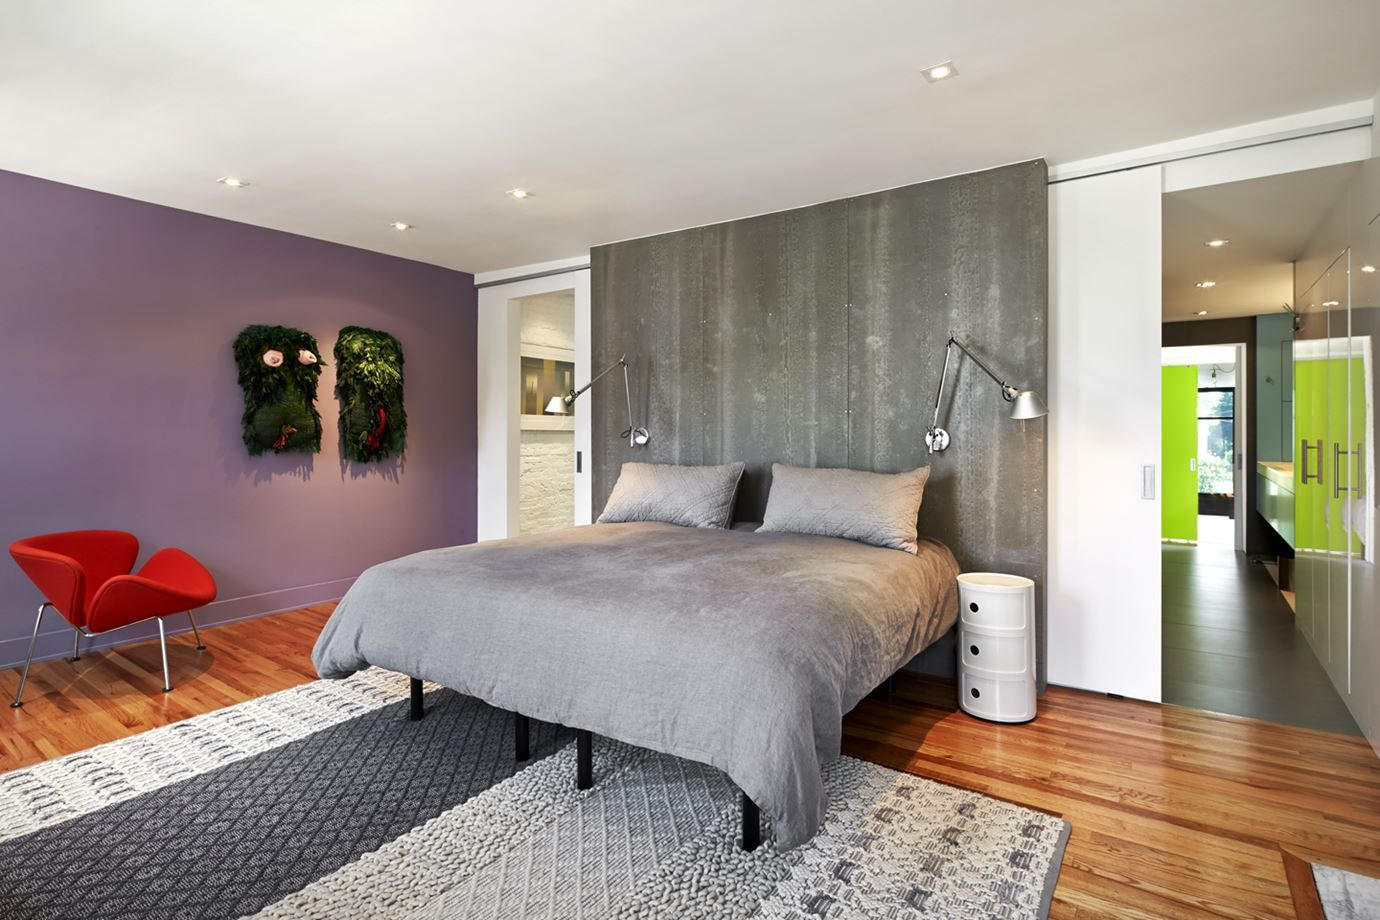 Concrete panels are a chic choice for a headboard.